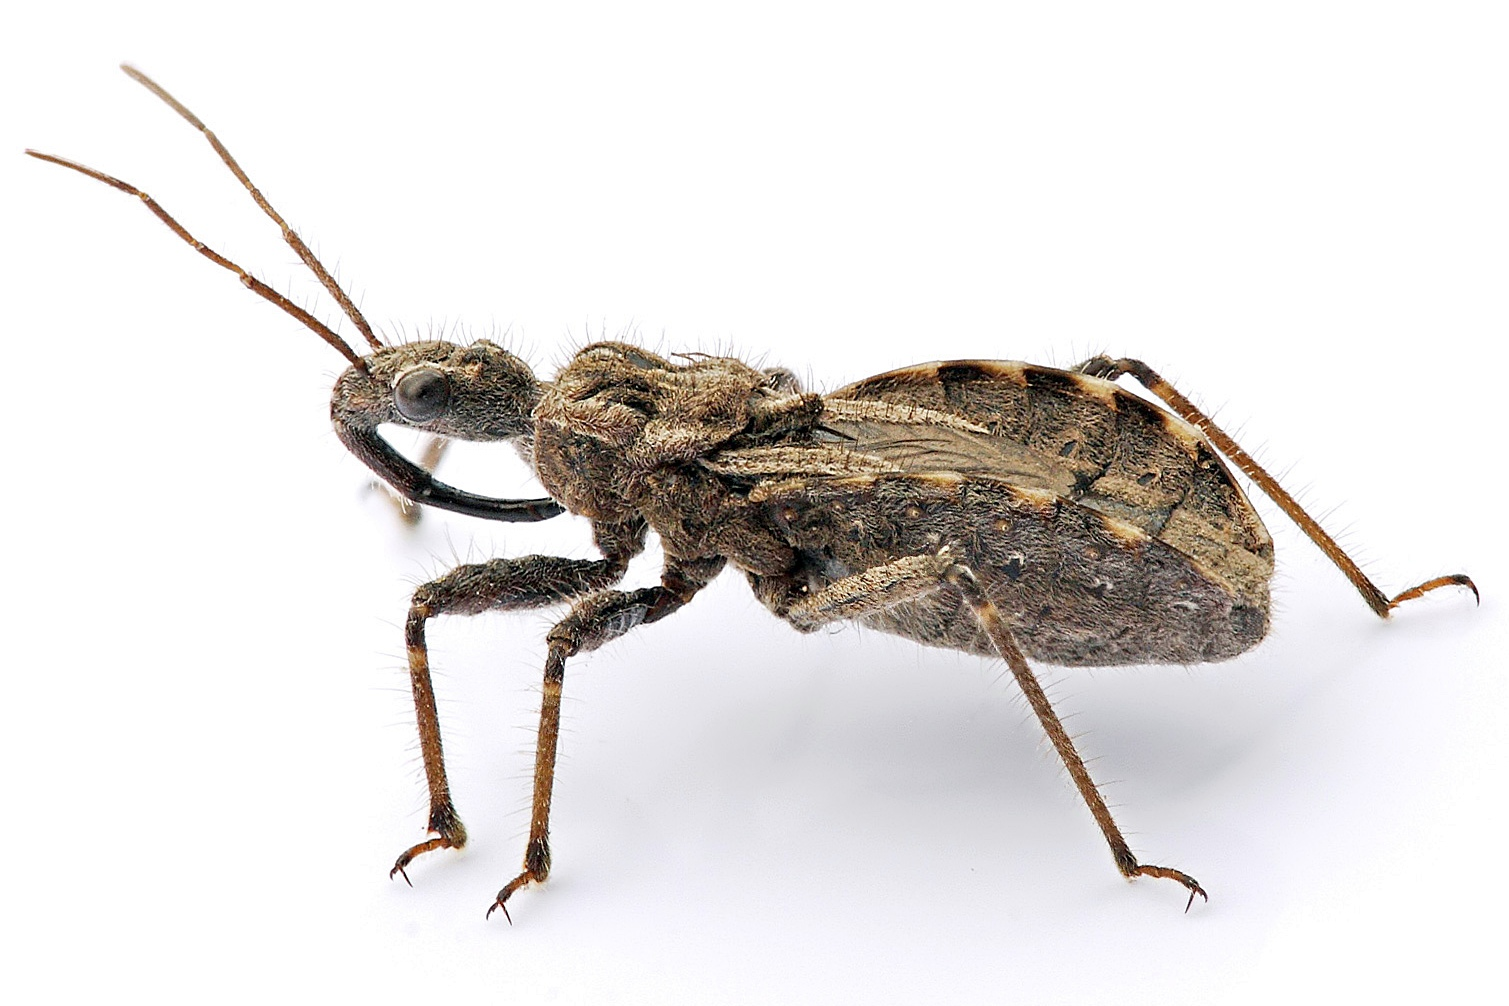 http://upload.wikimedia.org/wikipedia/commons/9/97/Assassin_bug_aug08_02.jpg